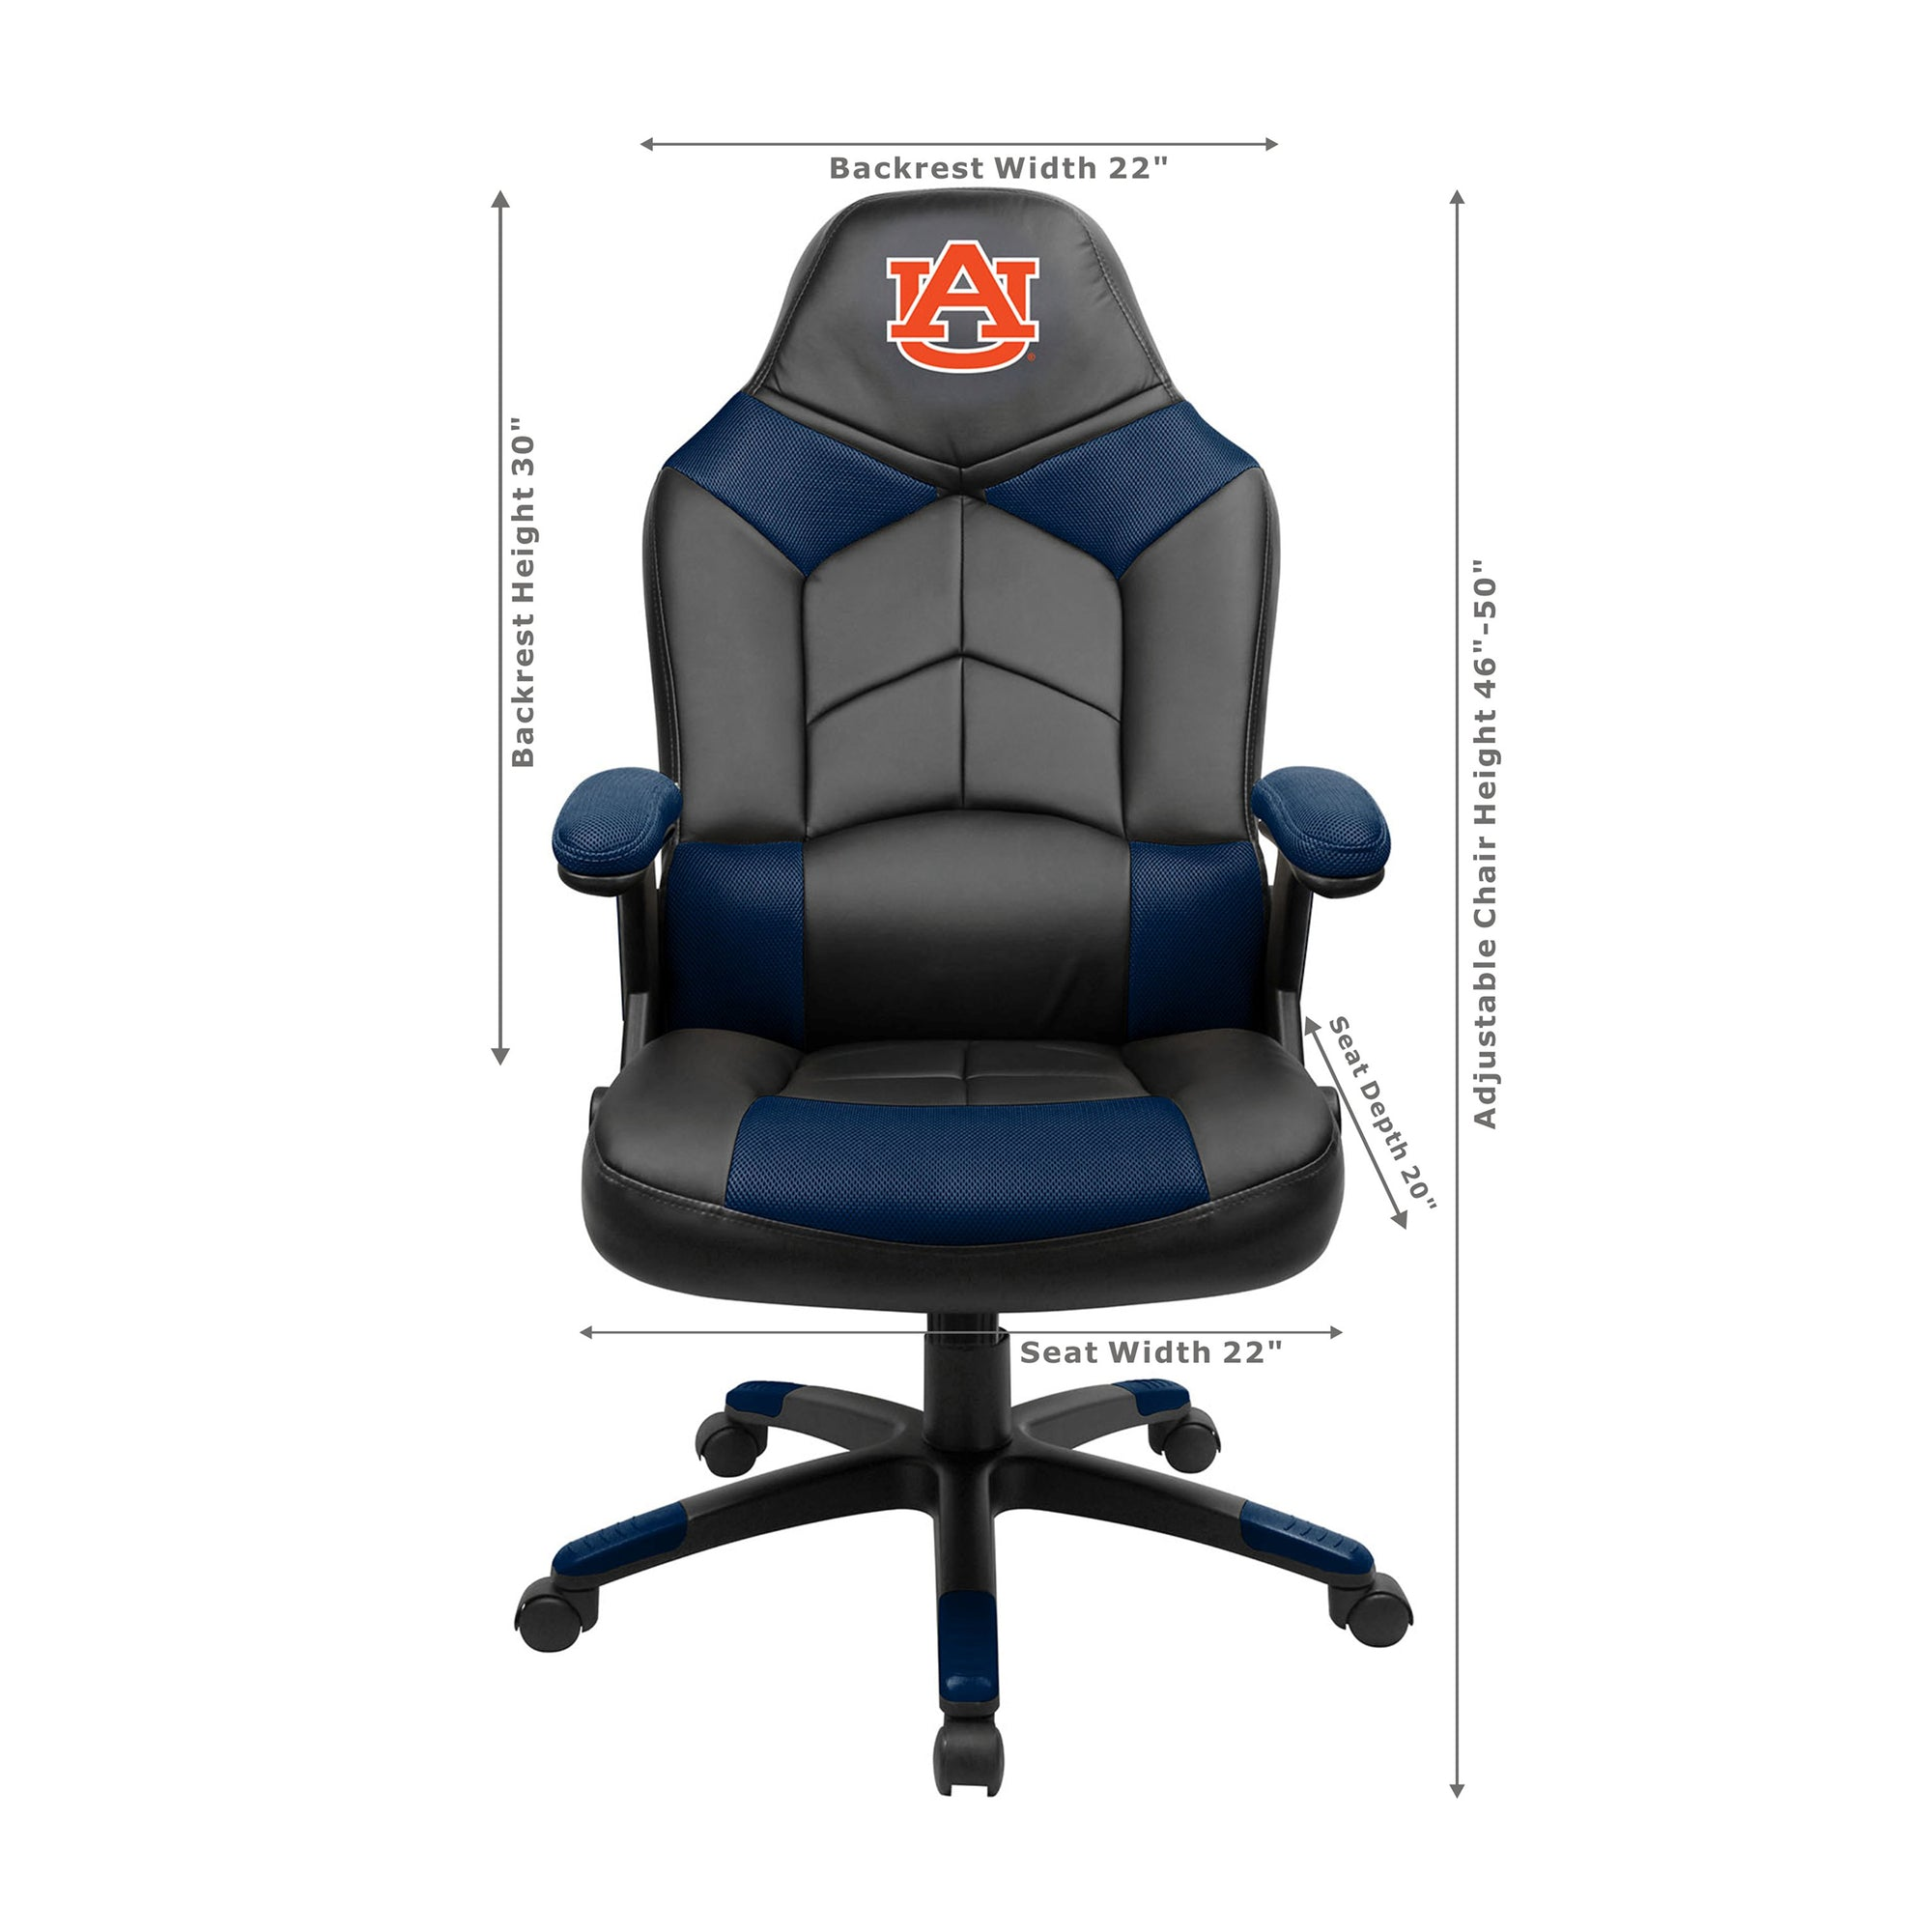 AUBURN UNIVERSITY OVERSIZED GAMING CHAIR